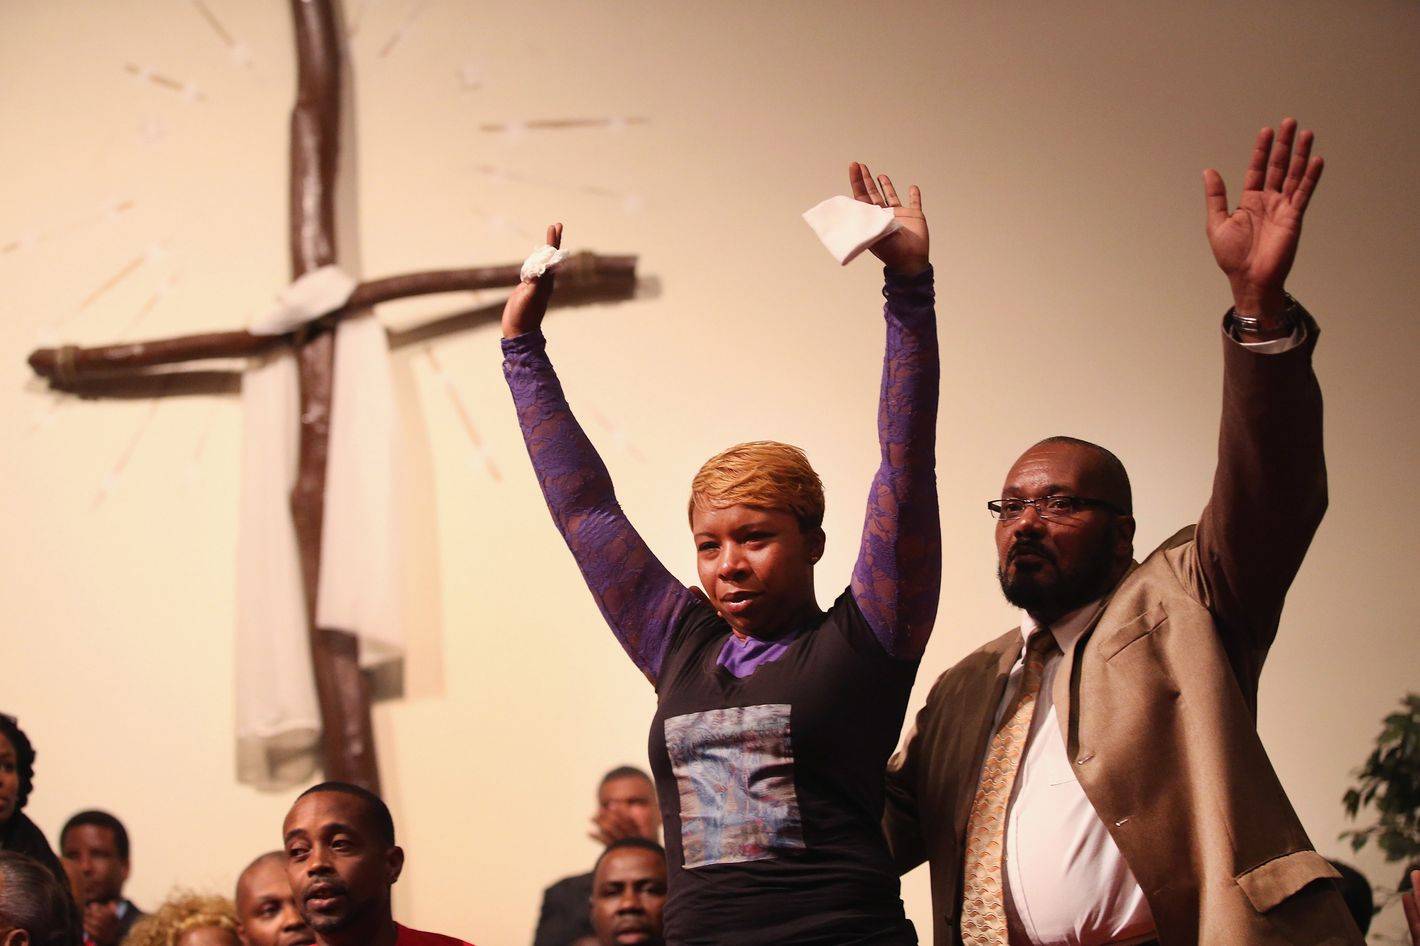 ST. LOUIS, MO - AUGUST 12:  Lesley McSpadden (L), the mother of slain teenager Michael Brown joins a capacity crowd of guests at Greater St. Marks Family Church to discuss the killing of her son and the civil unrest resulting from his death on August 12, 2014 in St Louis, Missouri. Brown was shot and killed by a police officer on Saturday in the nearby suburb of Ferguson. Ferguson has experienced two days of violent protests since the killing but, tonight the town remained mostly peaceful.  (Photo by Scott Olson/Getty Images)